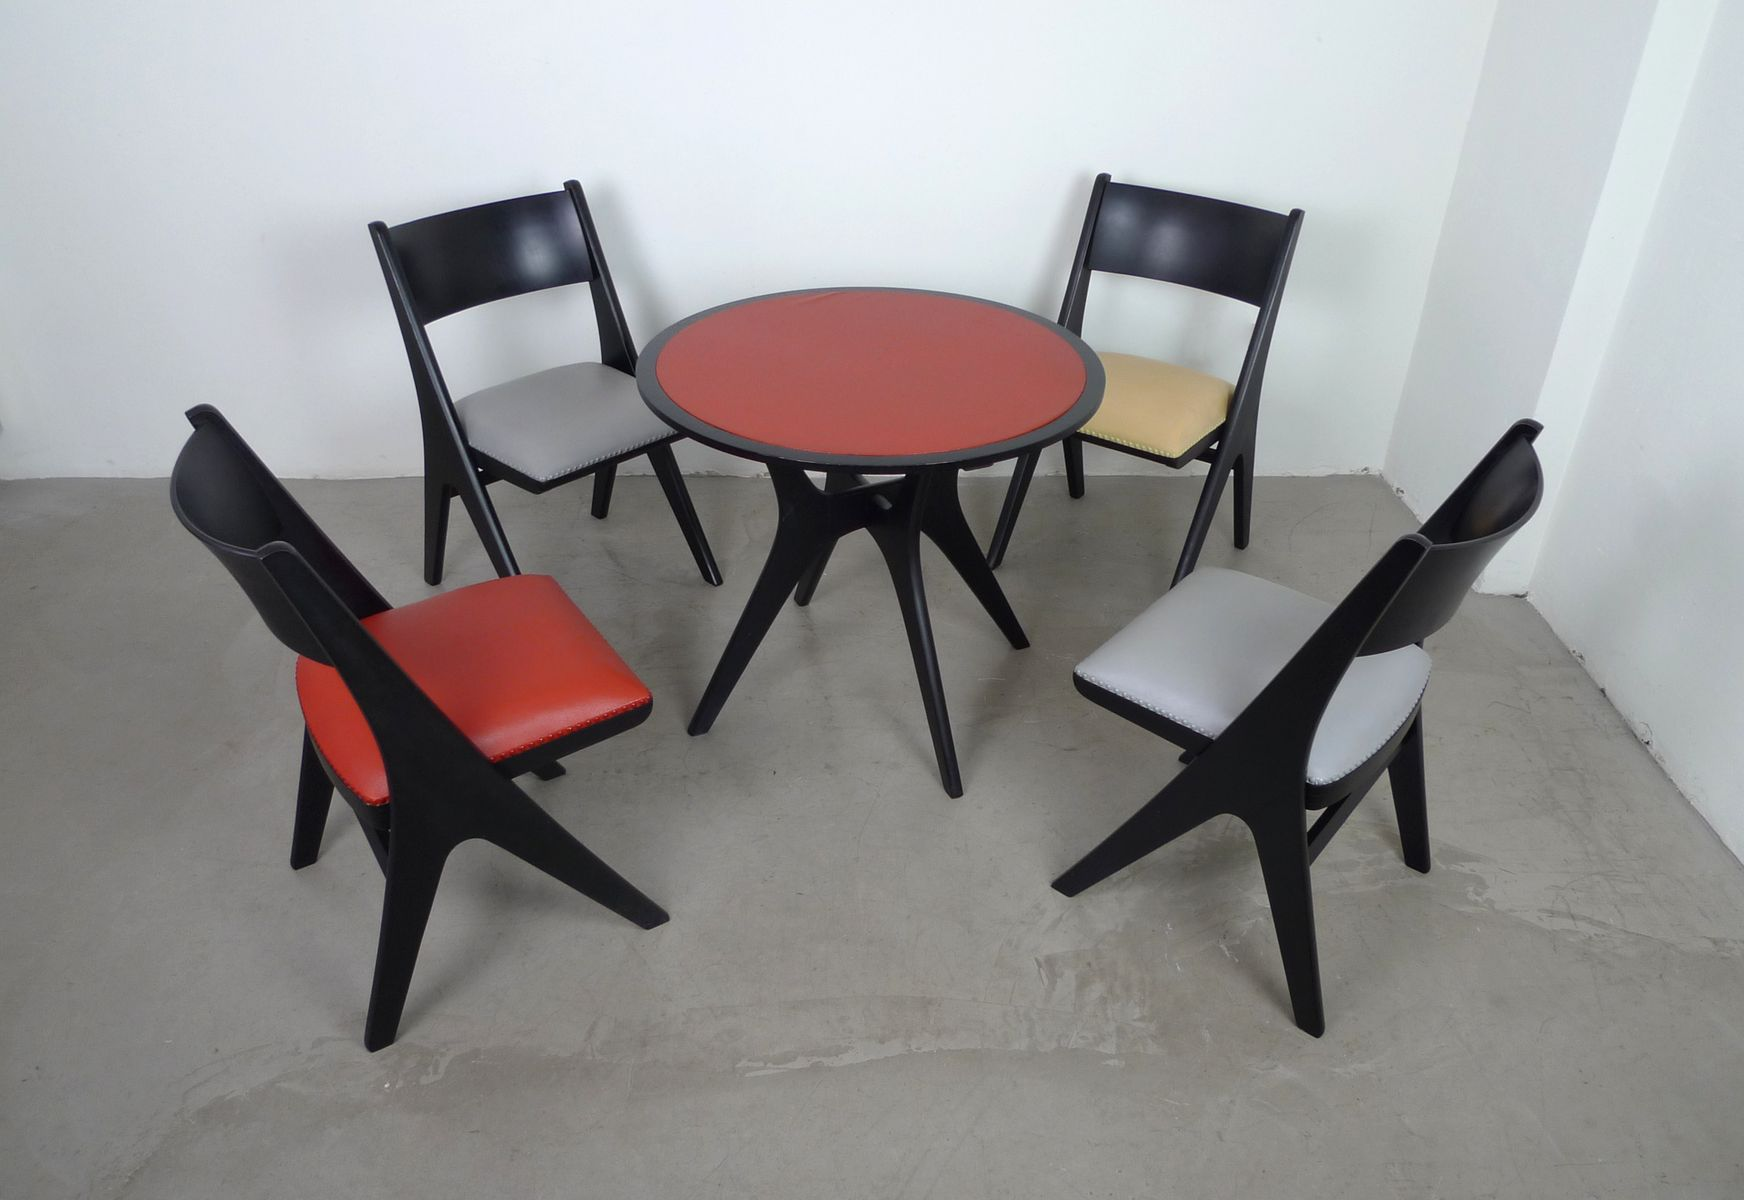 Dining Set with 4 Penguin Chairs by Carl Sasse for Casala  : dining set with 4 penguin chairs by carl sasse for casala 1950s 14 from www.pamono.com size 1744 x 1200 jpeg 102kB